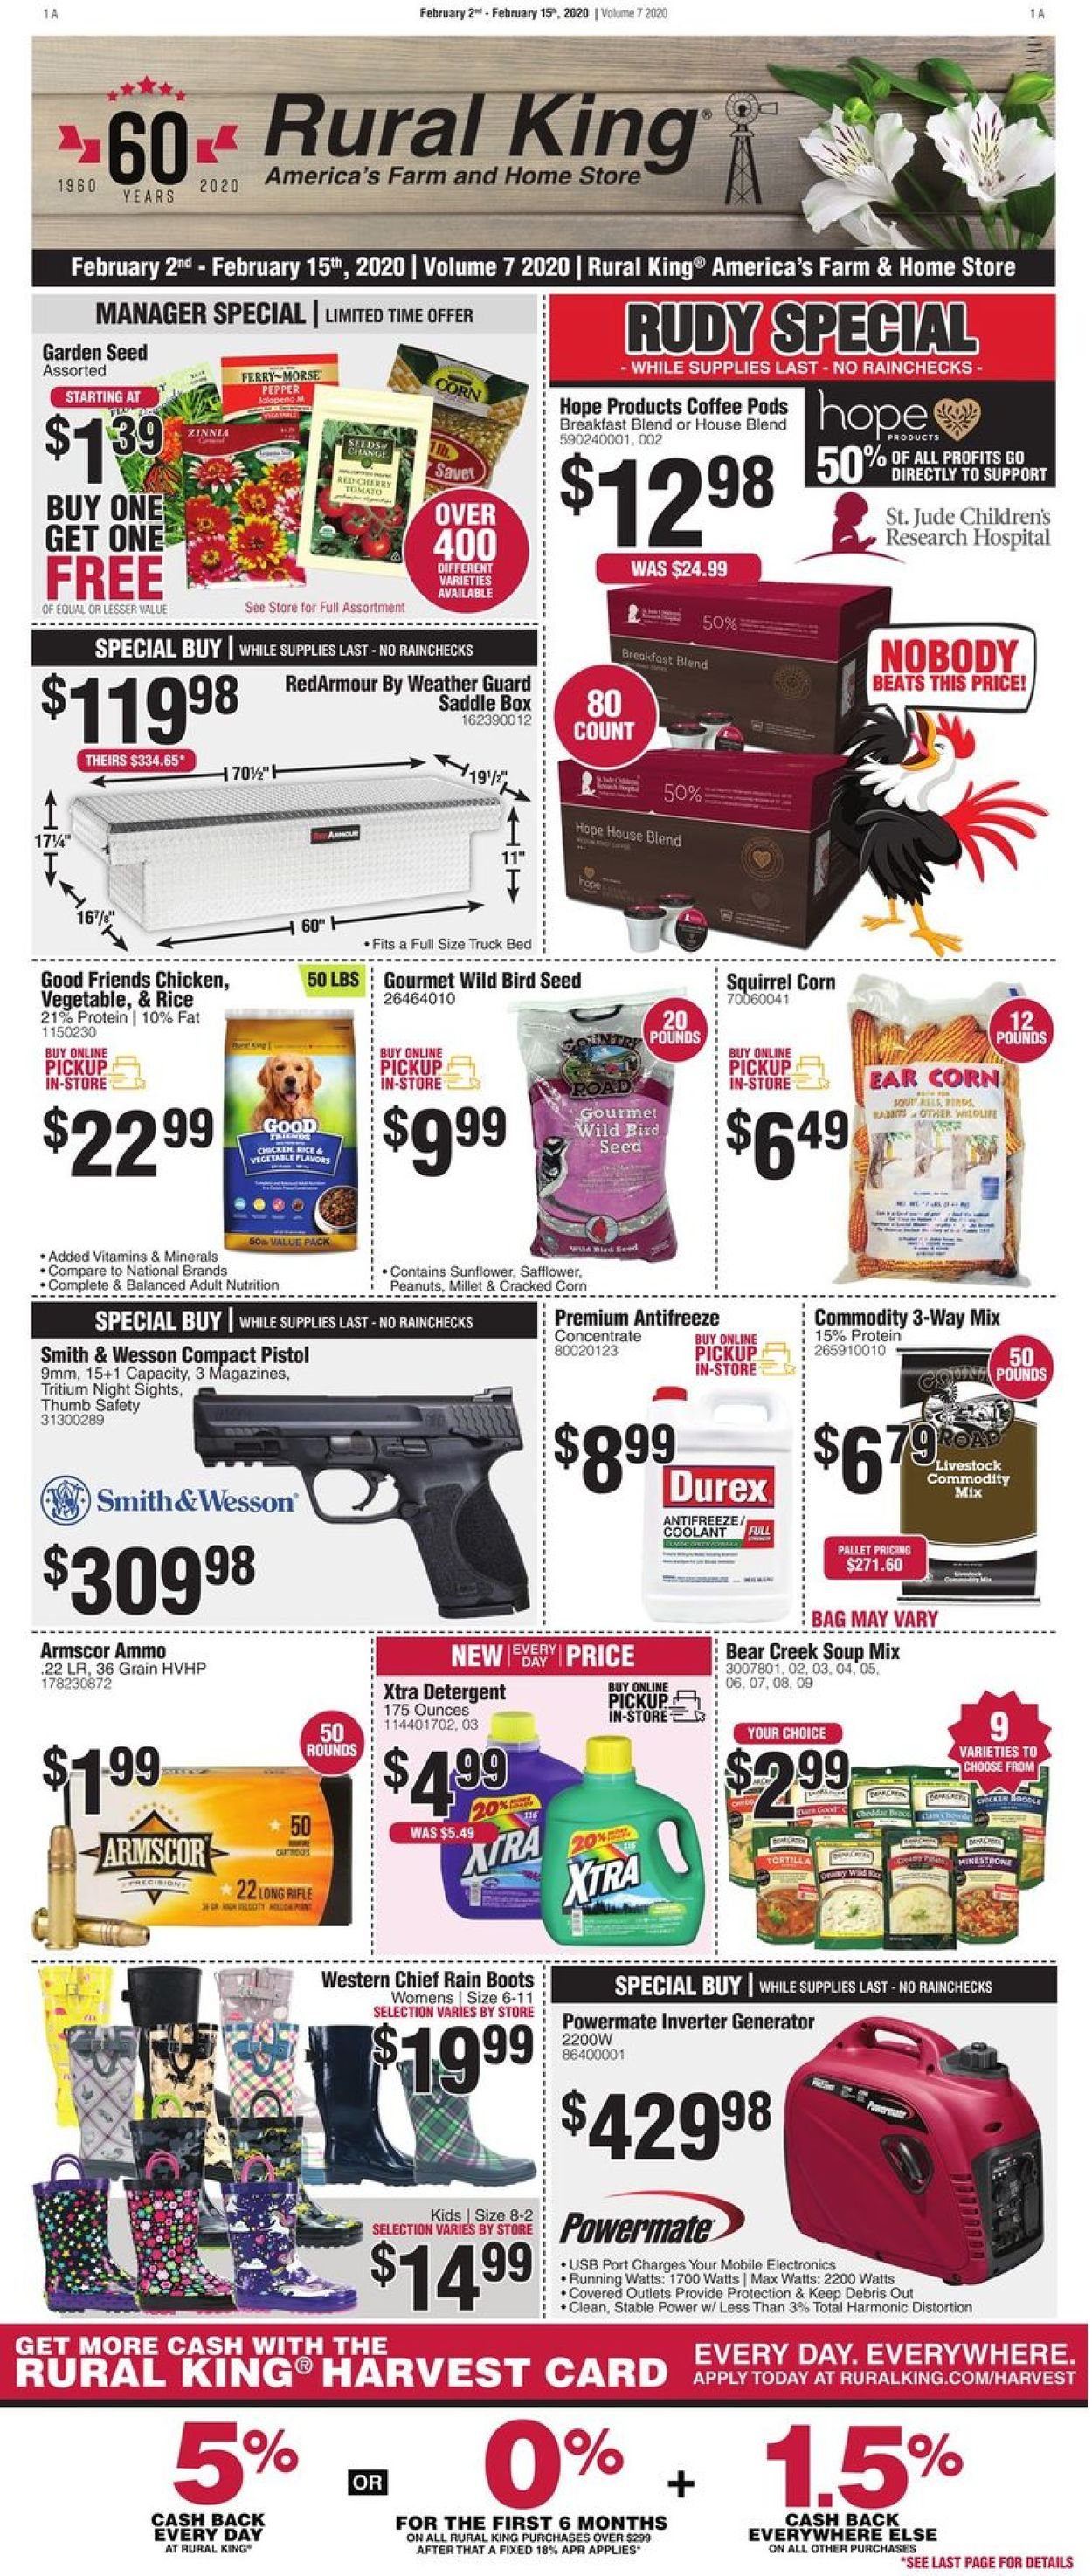 Rural King Weekly Ad Circular - valid 02/02-02/15/2020